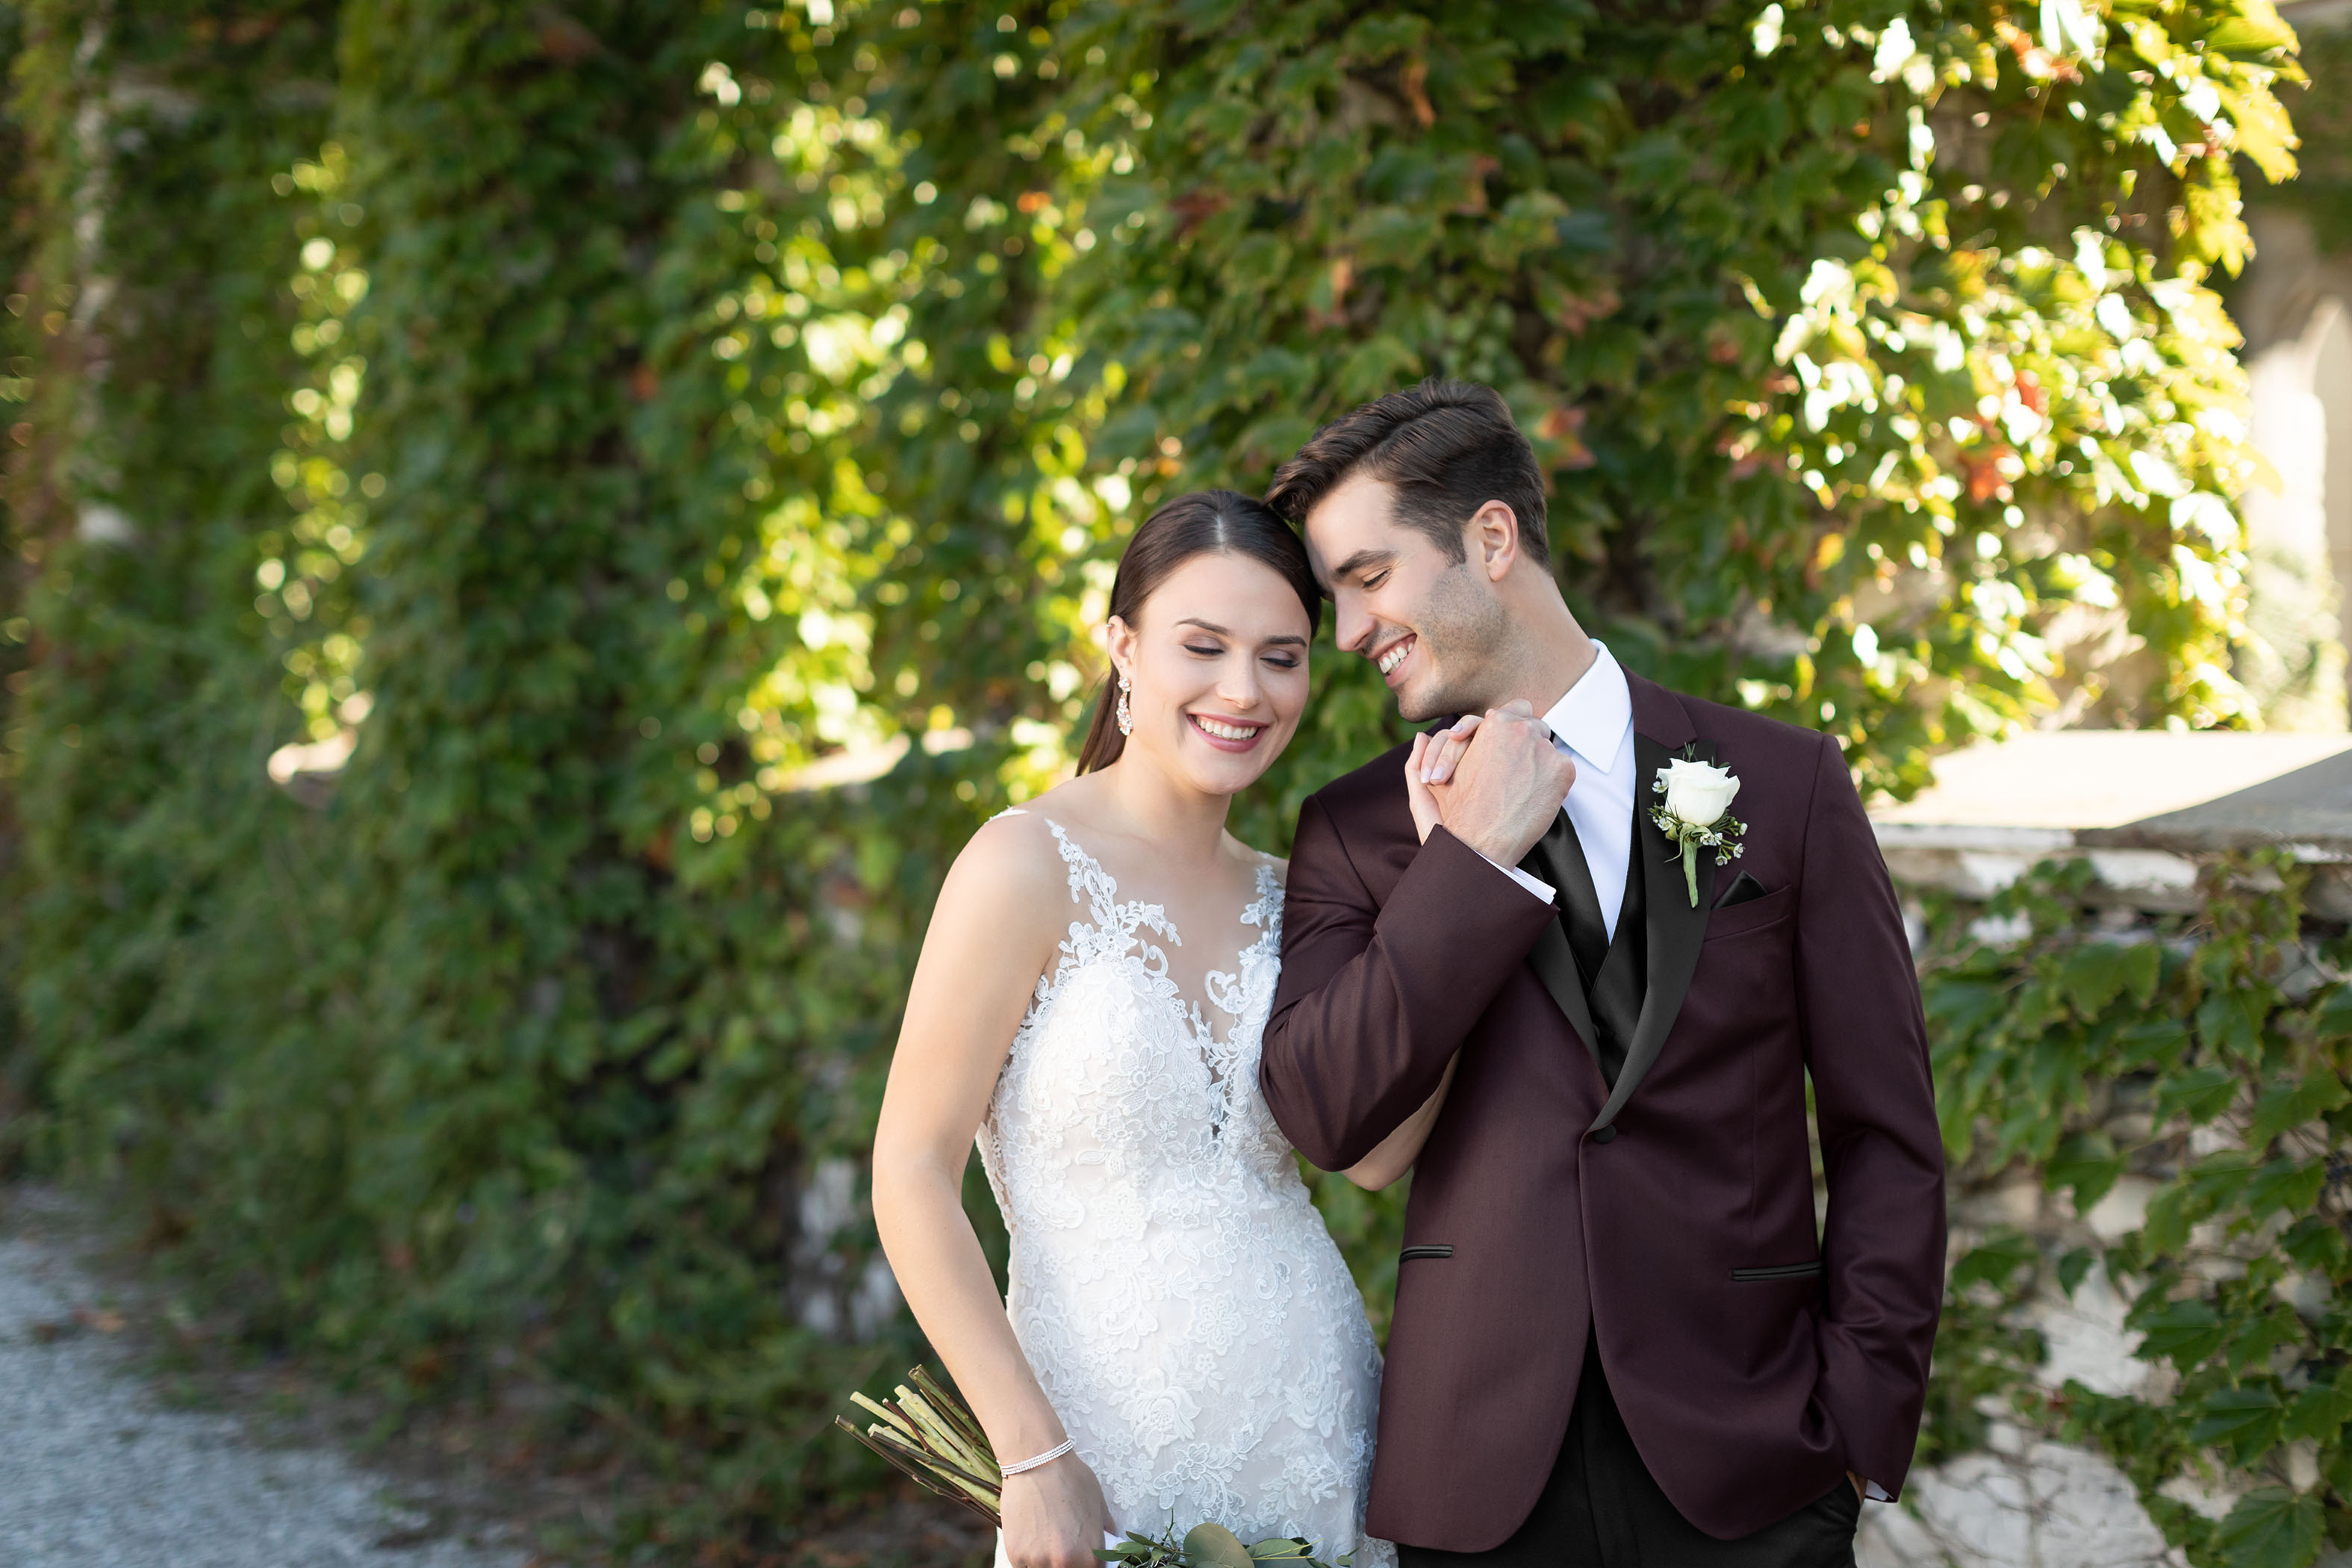 Bride and Groom smiling in front of vines , Groom is wearing a Custom Tuxedo